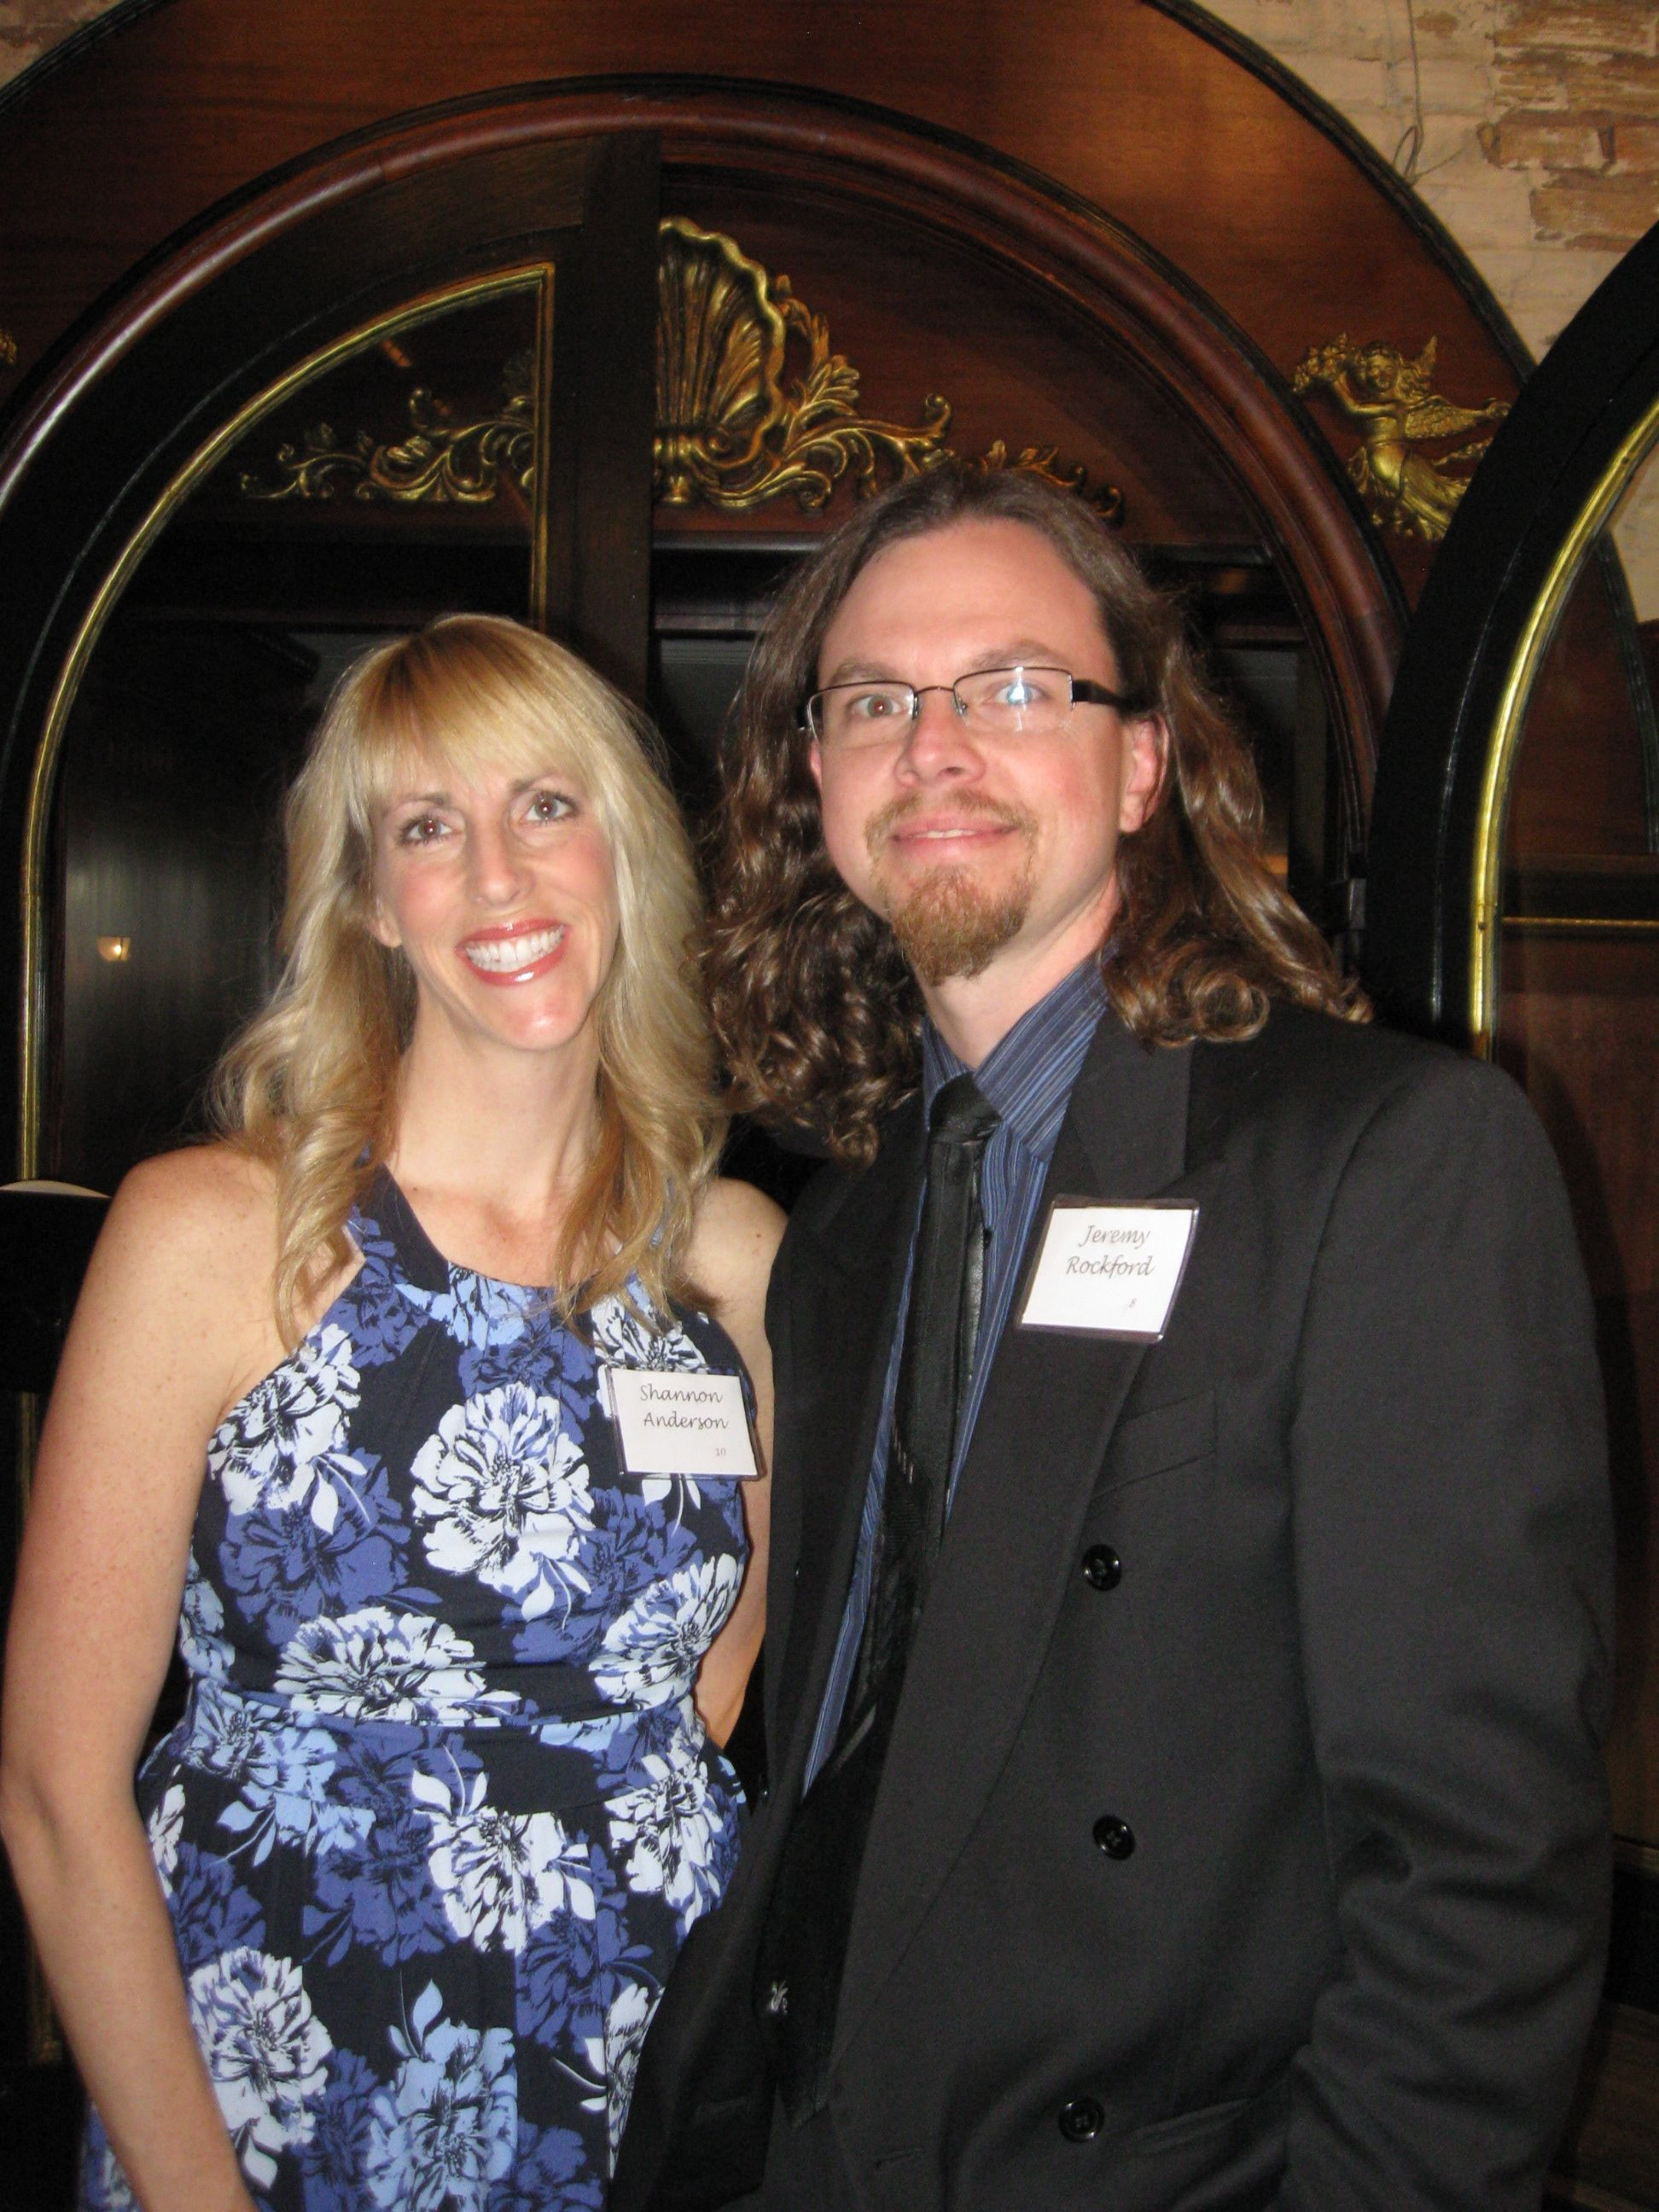 Teachers Shannon Anderson and Jeremy Rockford.jpg